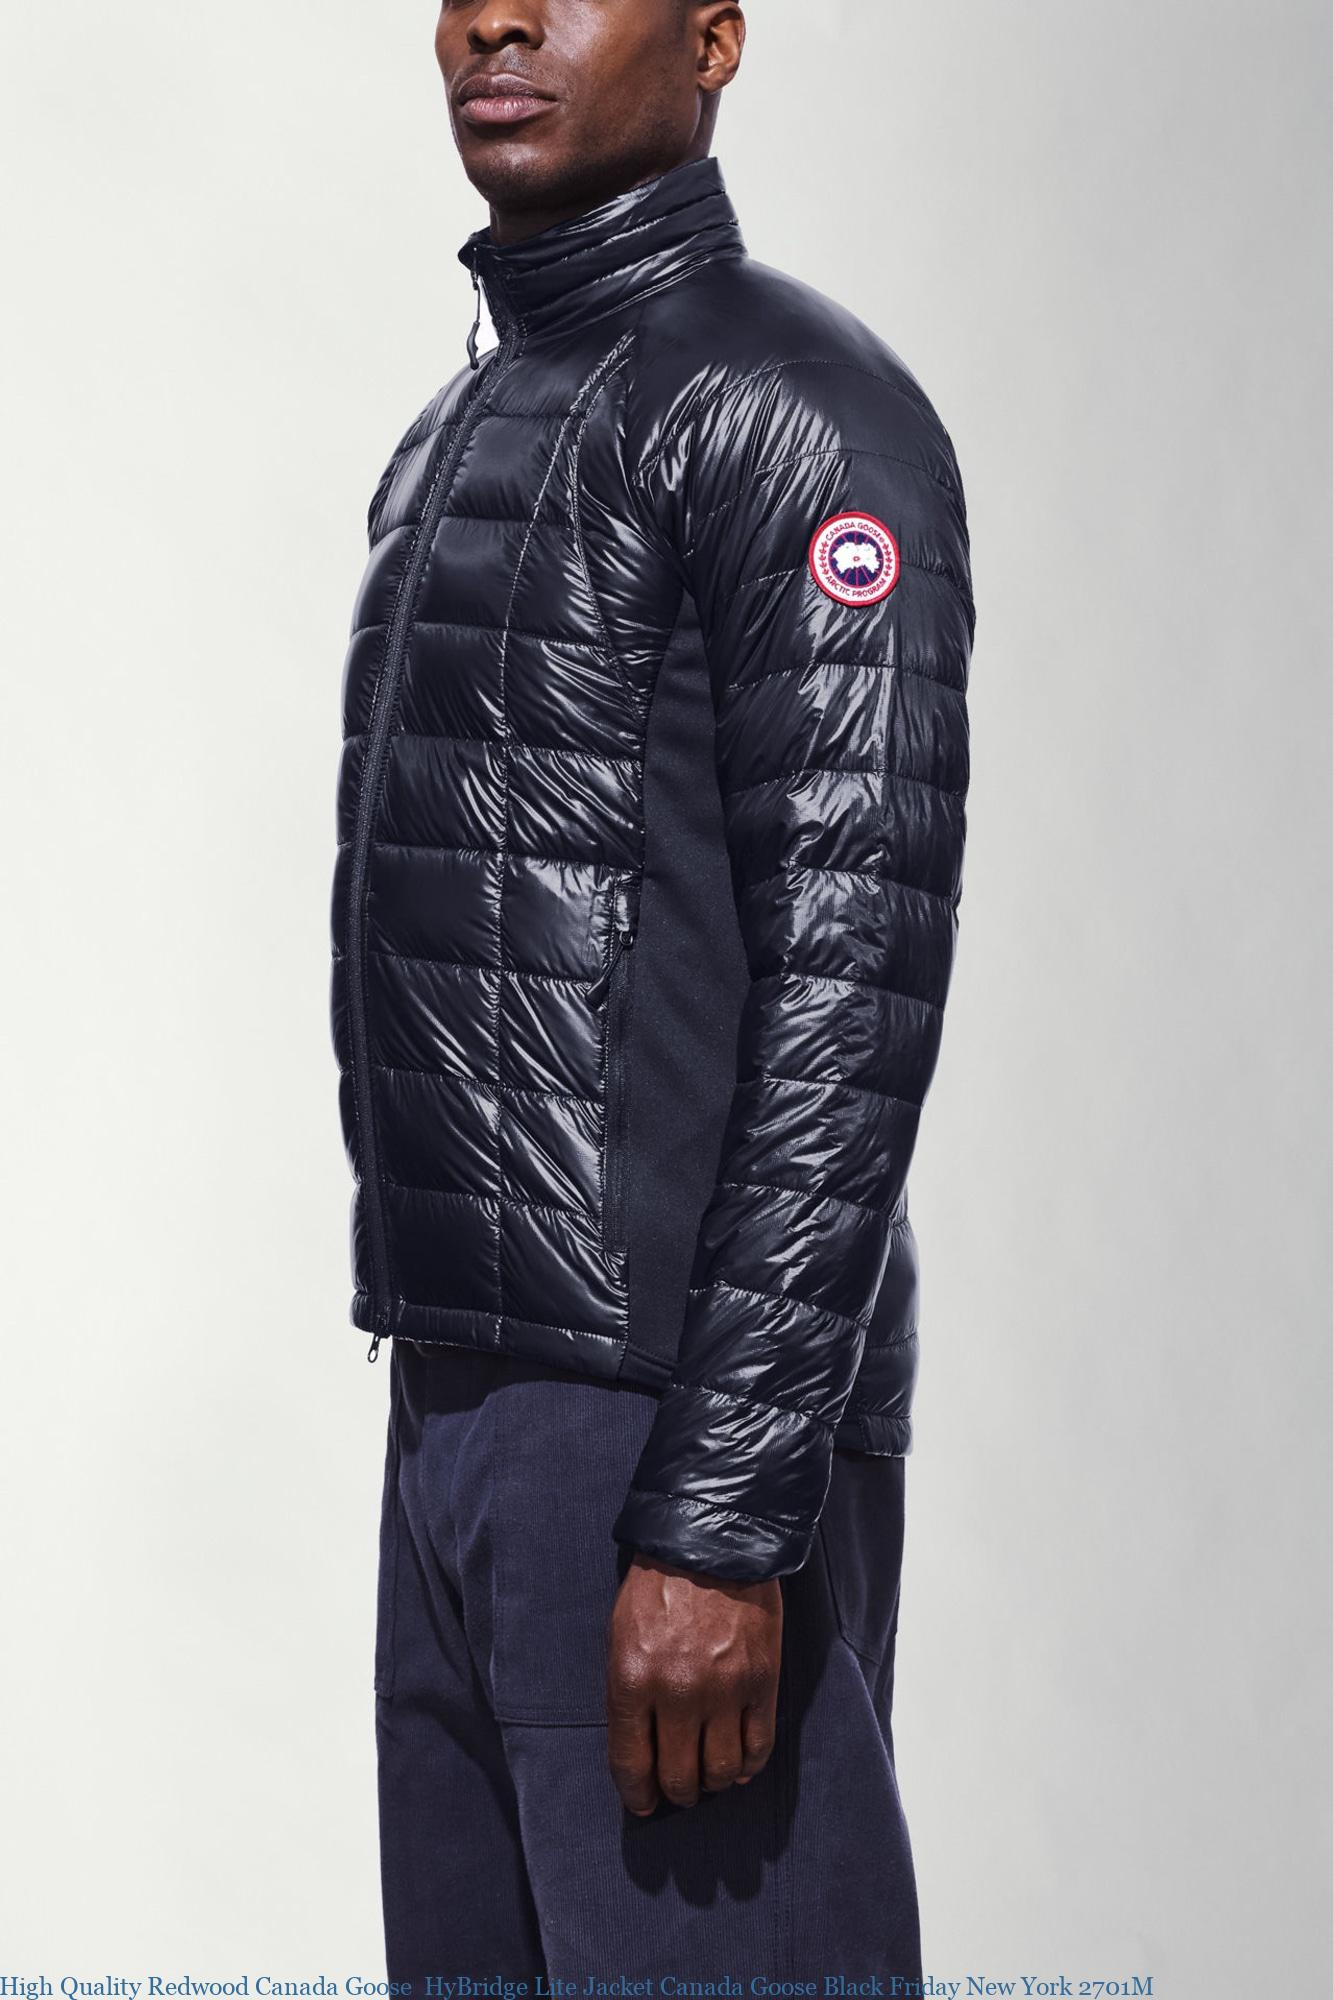 027b023accb High Quality Redwood Canada Goose HyBridge Lite Jacket Canada Goose Black  Friday New York 2701M – Canada Goose Outlet™ – Cheap Canada Goose Jackets  Online ...